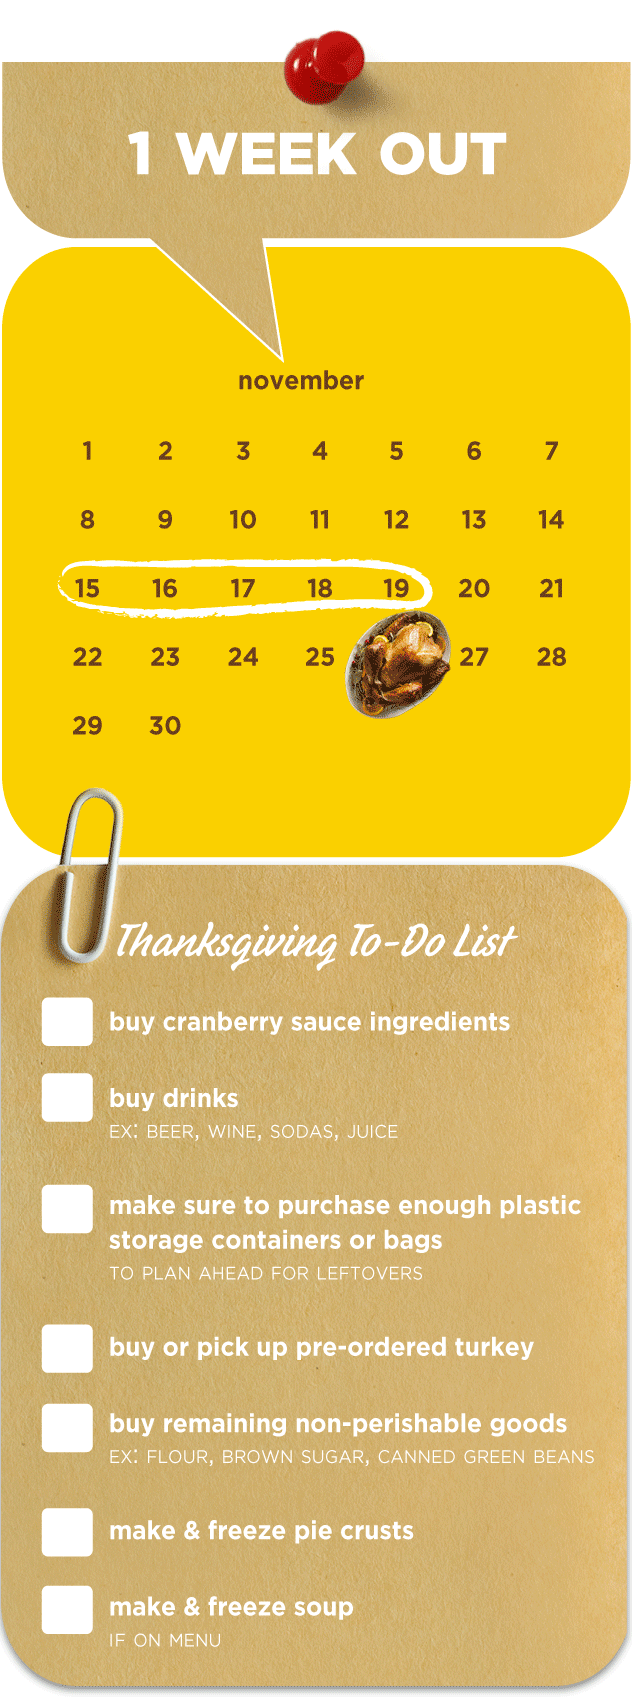 1-Week-Out_Thanksgiving-Planning_PAM_2015.png